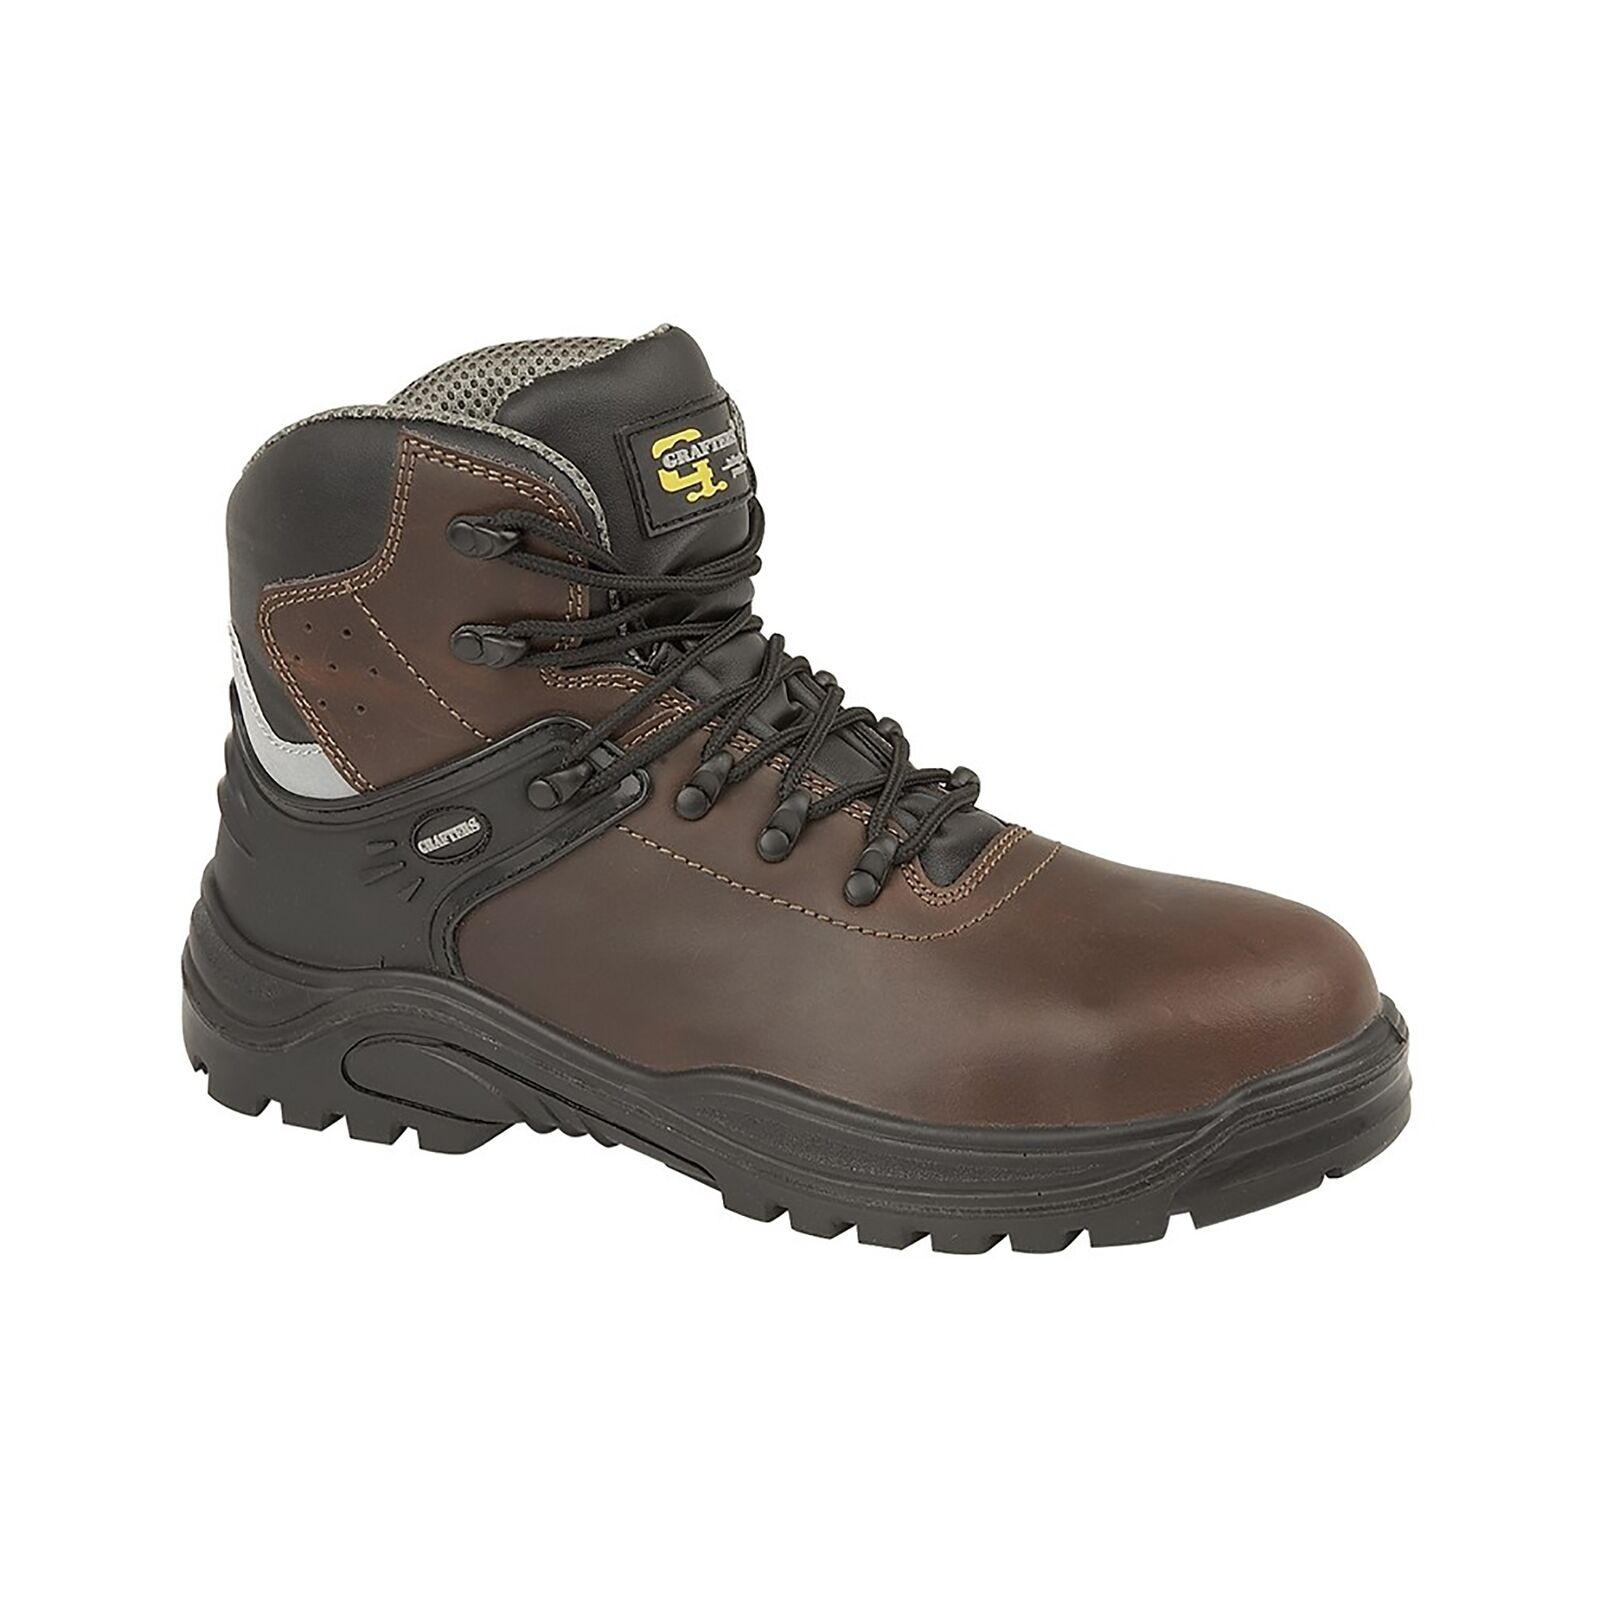 Grafters TRANSPORTER Unisex Leather Safety Boots Dark Brown